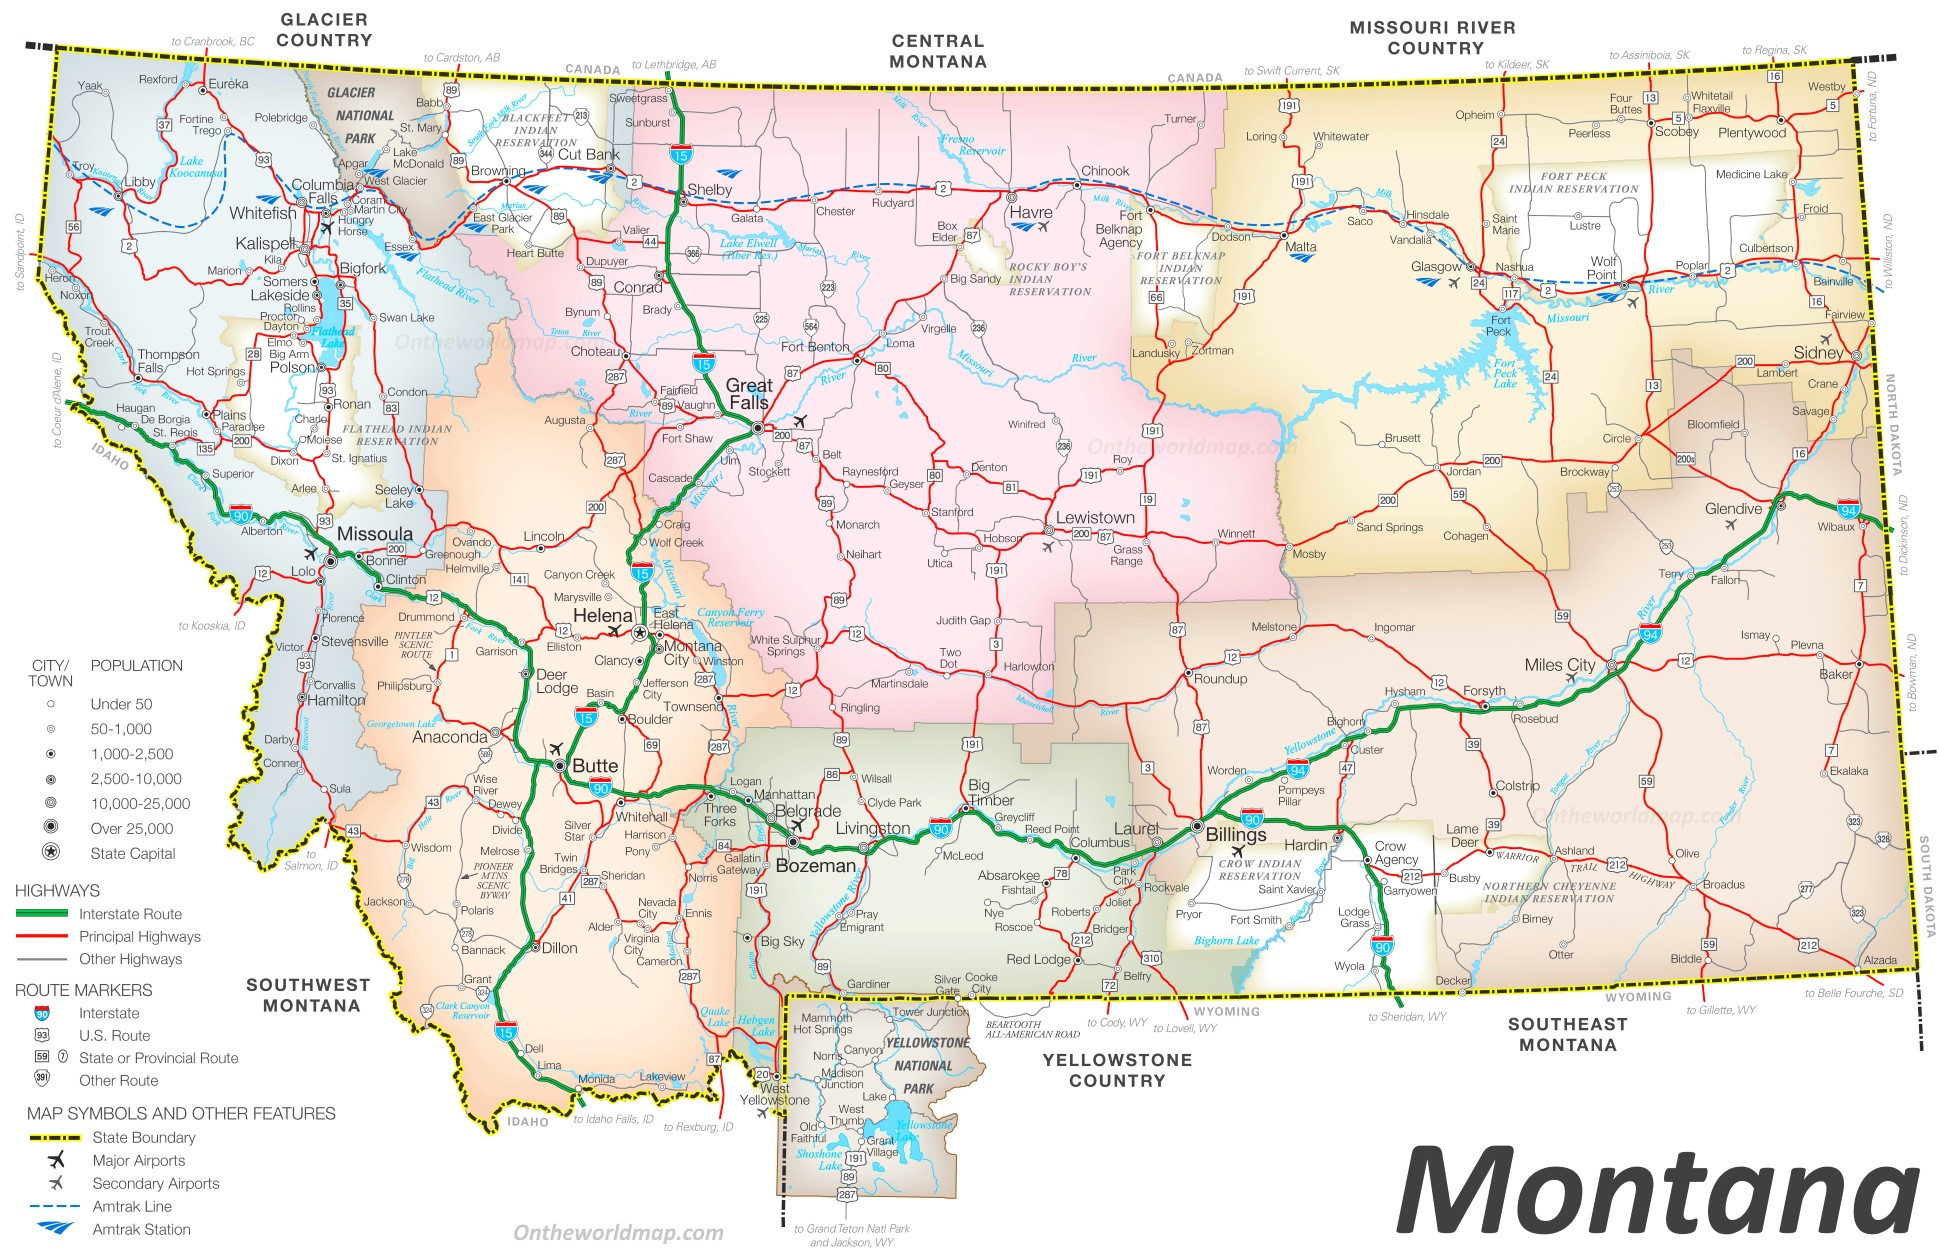 Montana State Maps USA Maps Of Montana MT - Montana map